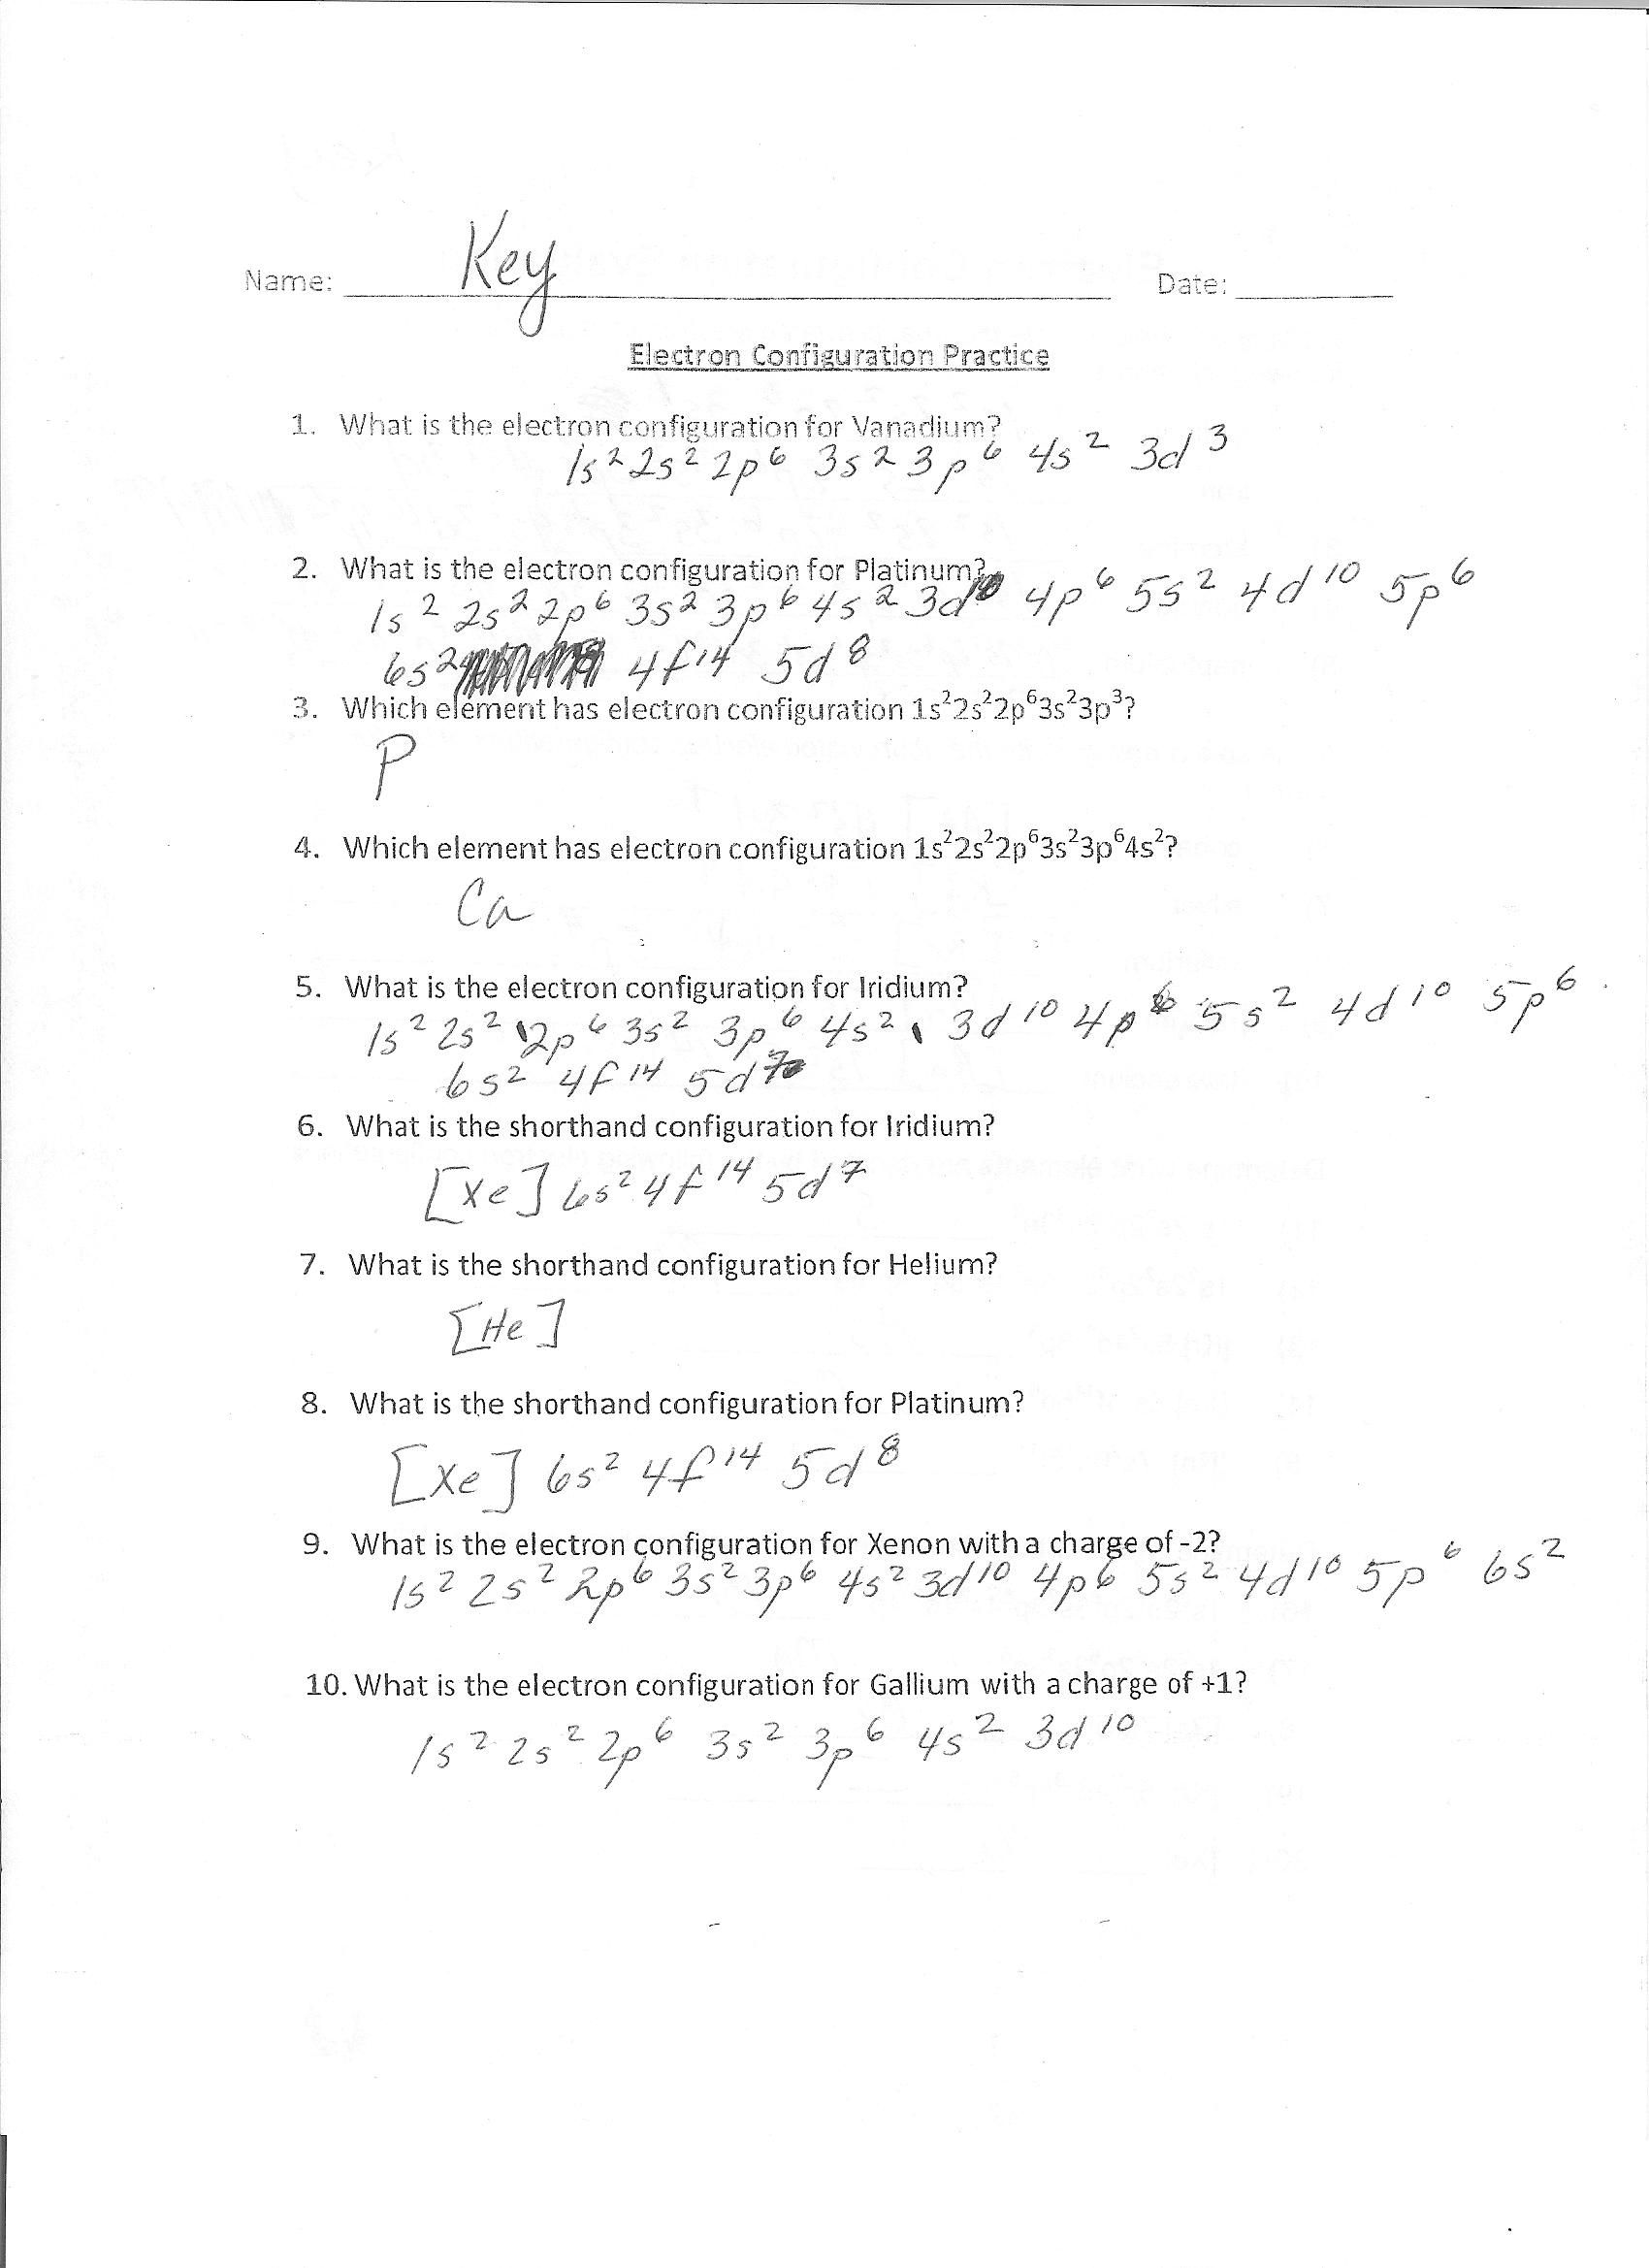 Electron Configurations And The Periodic Table Worksheet